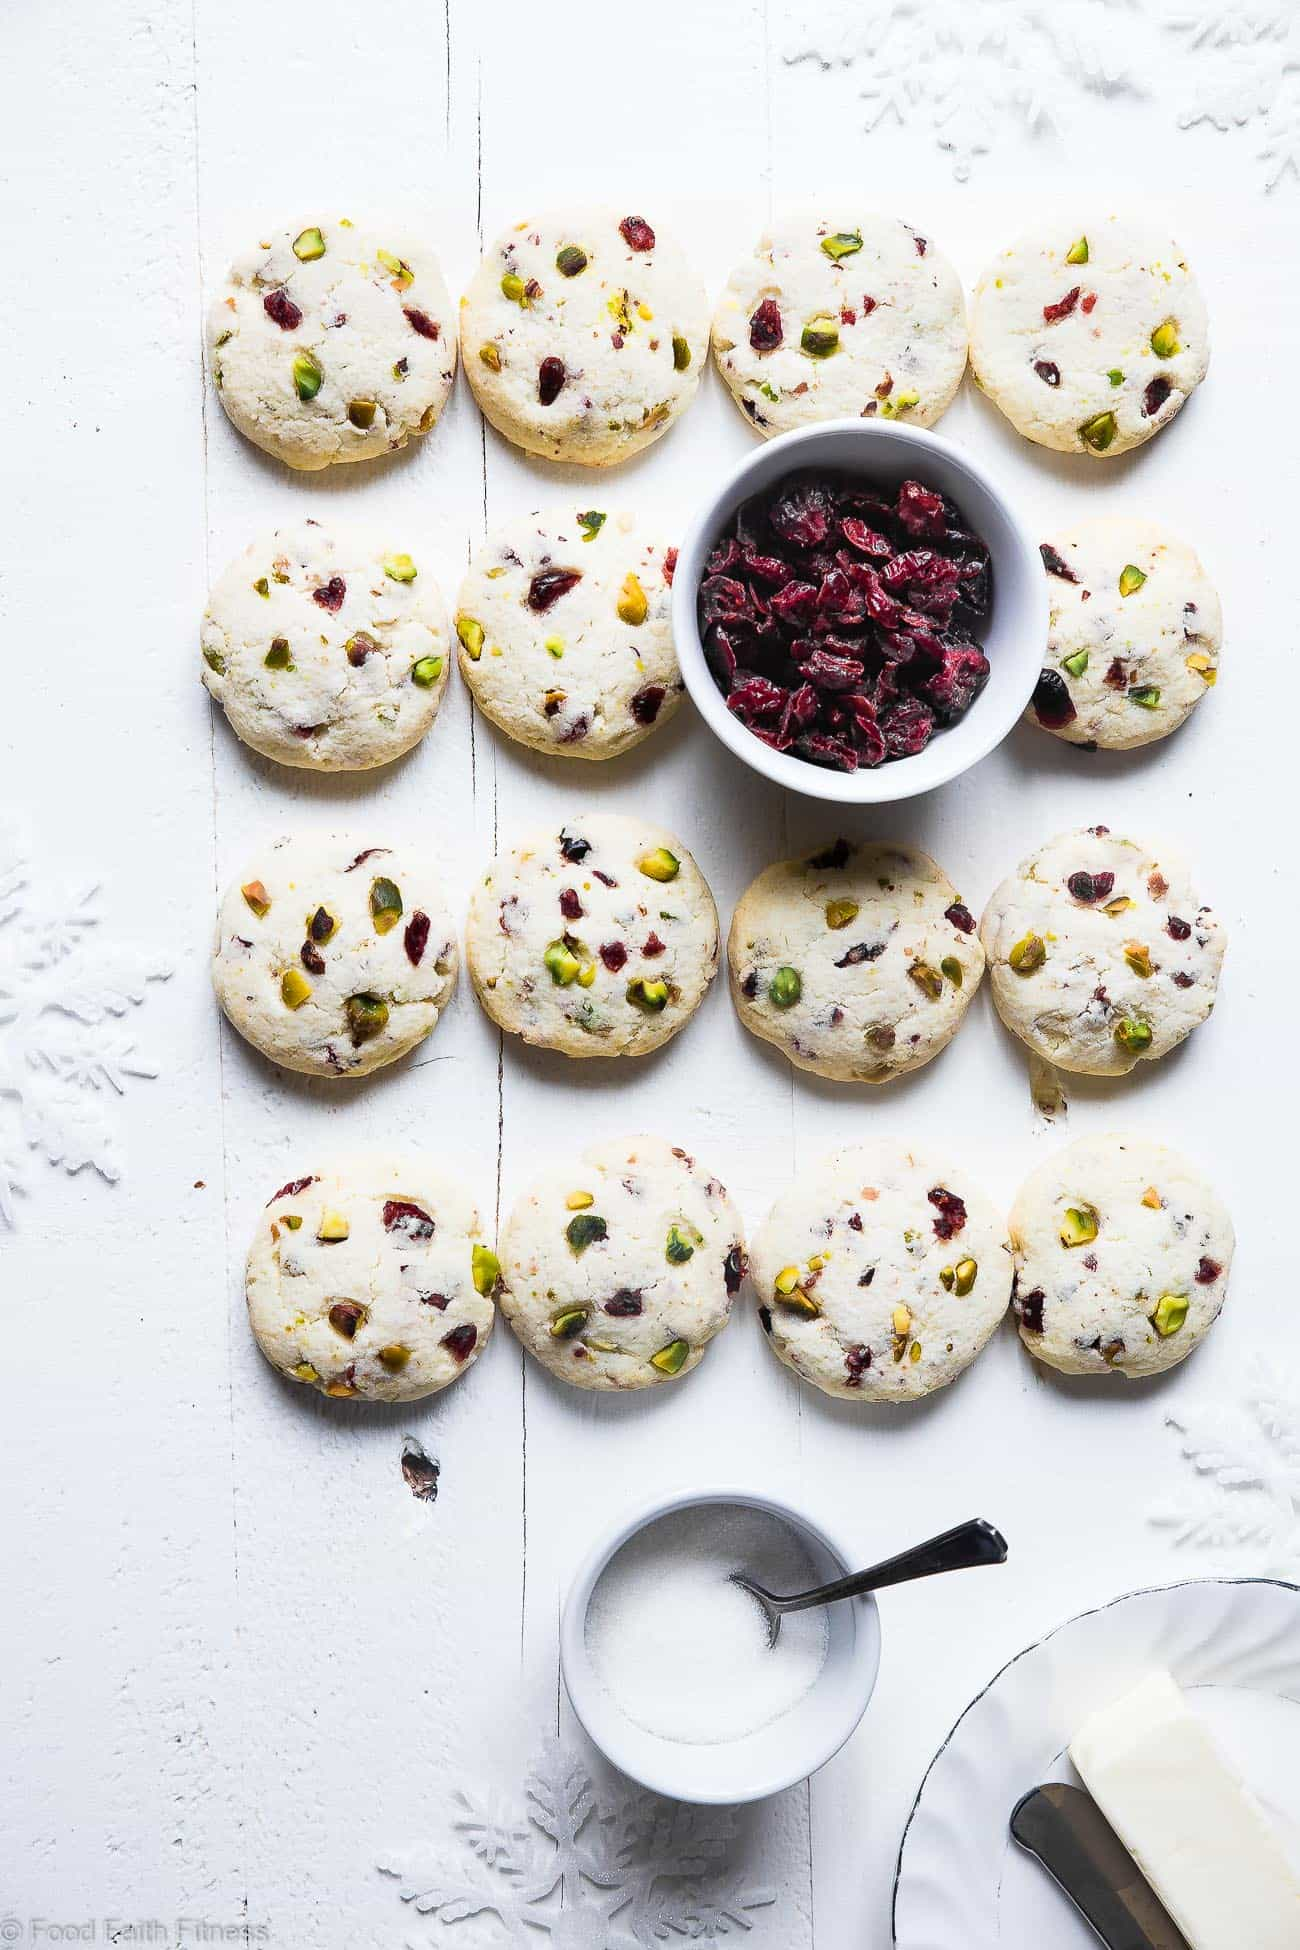 Chewy Gluten Free Sugar Free Sugar Cookies Recipe - Need some sugar free cookie recipes? These Soft chewy sugar cookies havetangy and crunchy cranberries and pistachios! They're a healthier Christmas treat for only 95 calories! | Foodfaithfitness.com | @FoodFaithFit